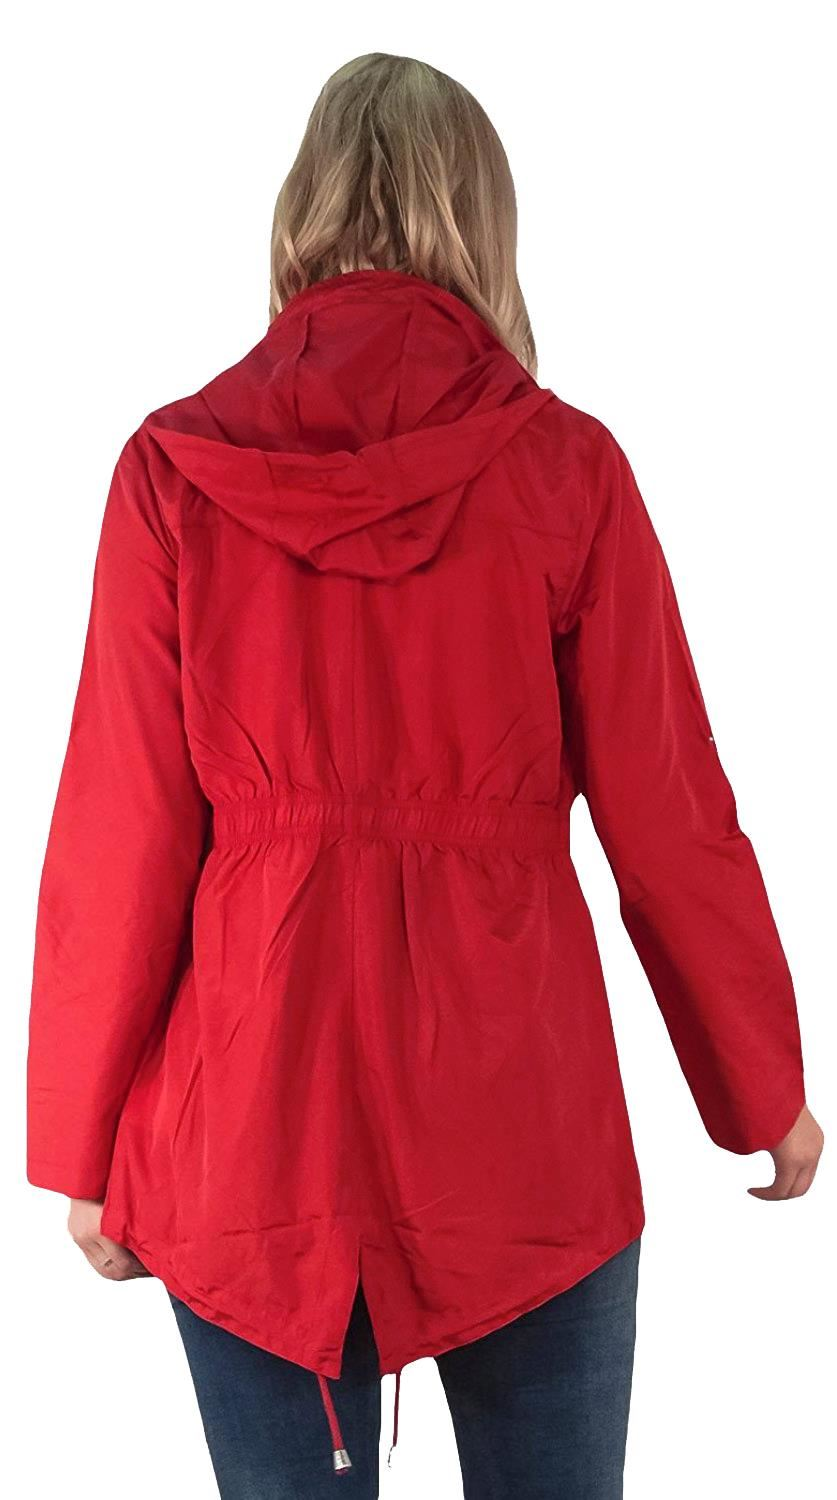 New-Ladies-Hooded-Plain-Contrast-Zip-Showerproof-Parka-Raincoats-Jackets thumbnail 23